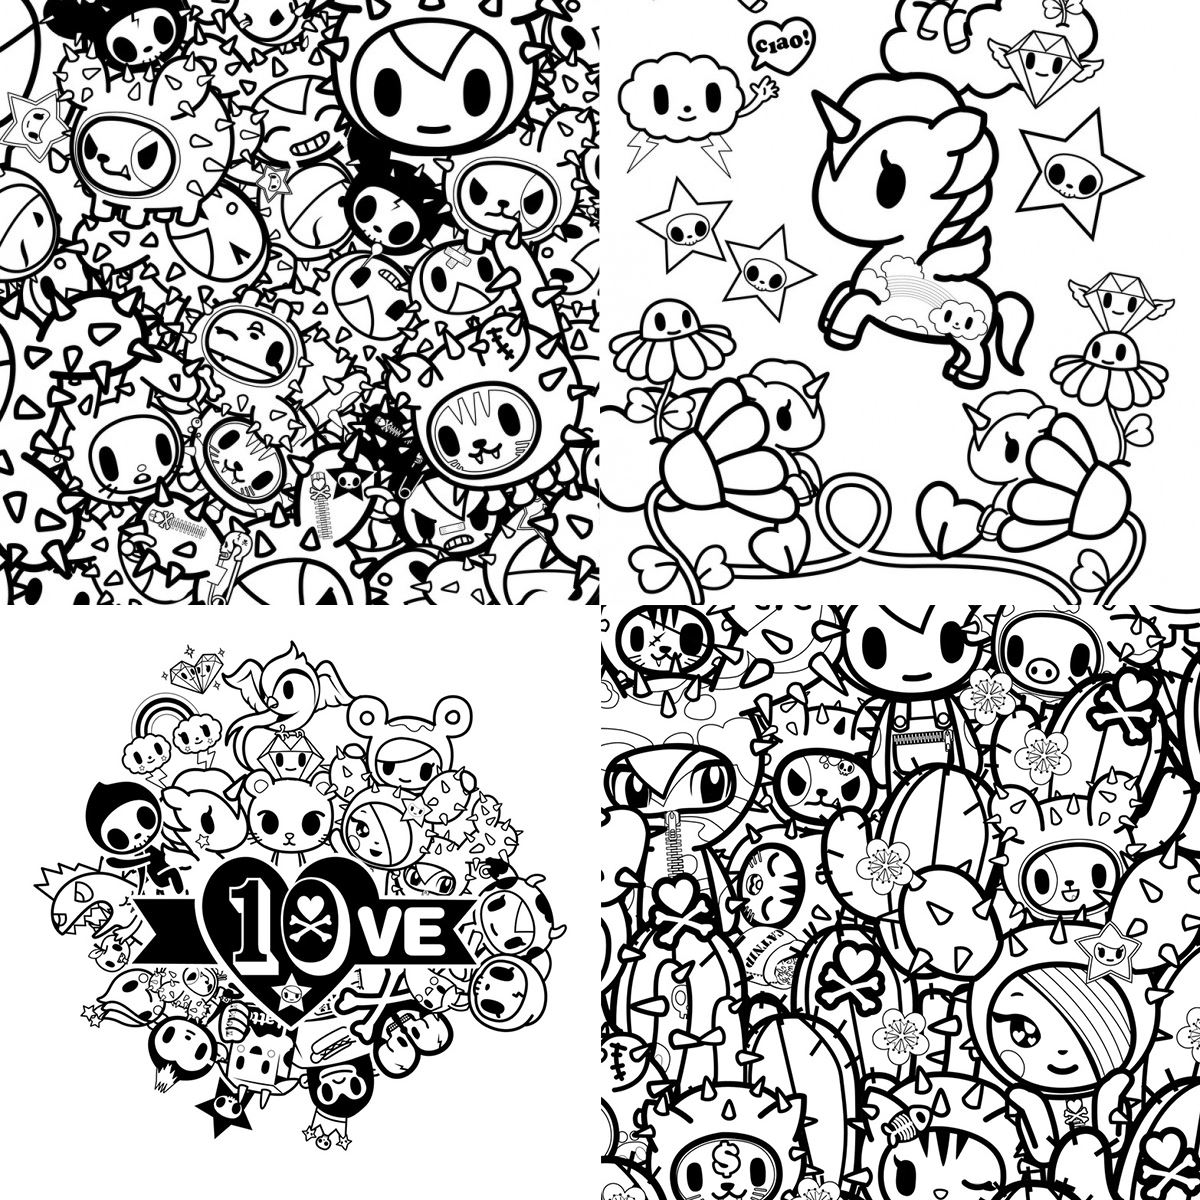 Tokidoki Coloring Pages Tokidoki Coloring Pages